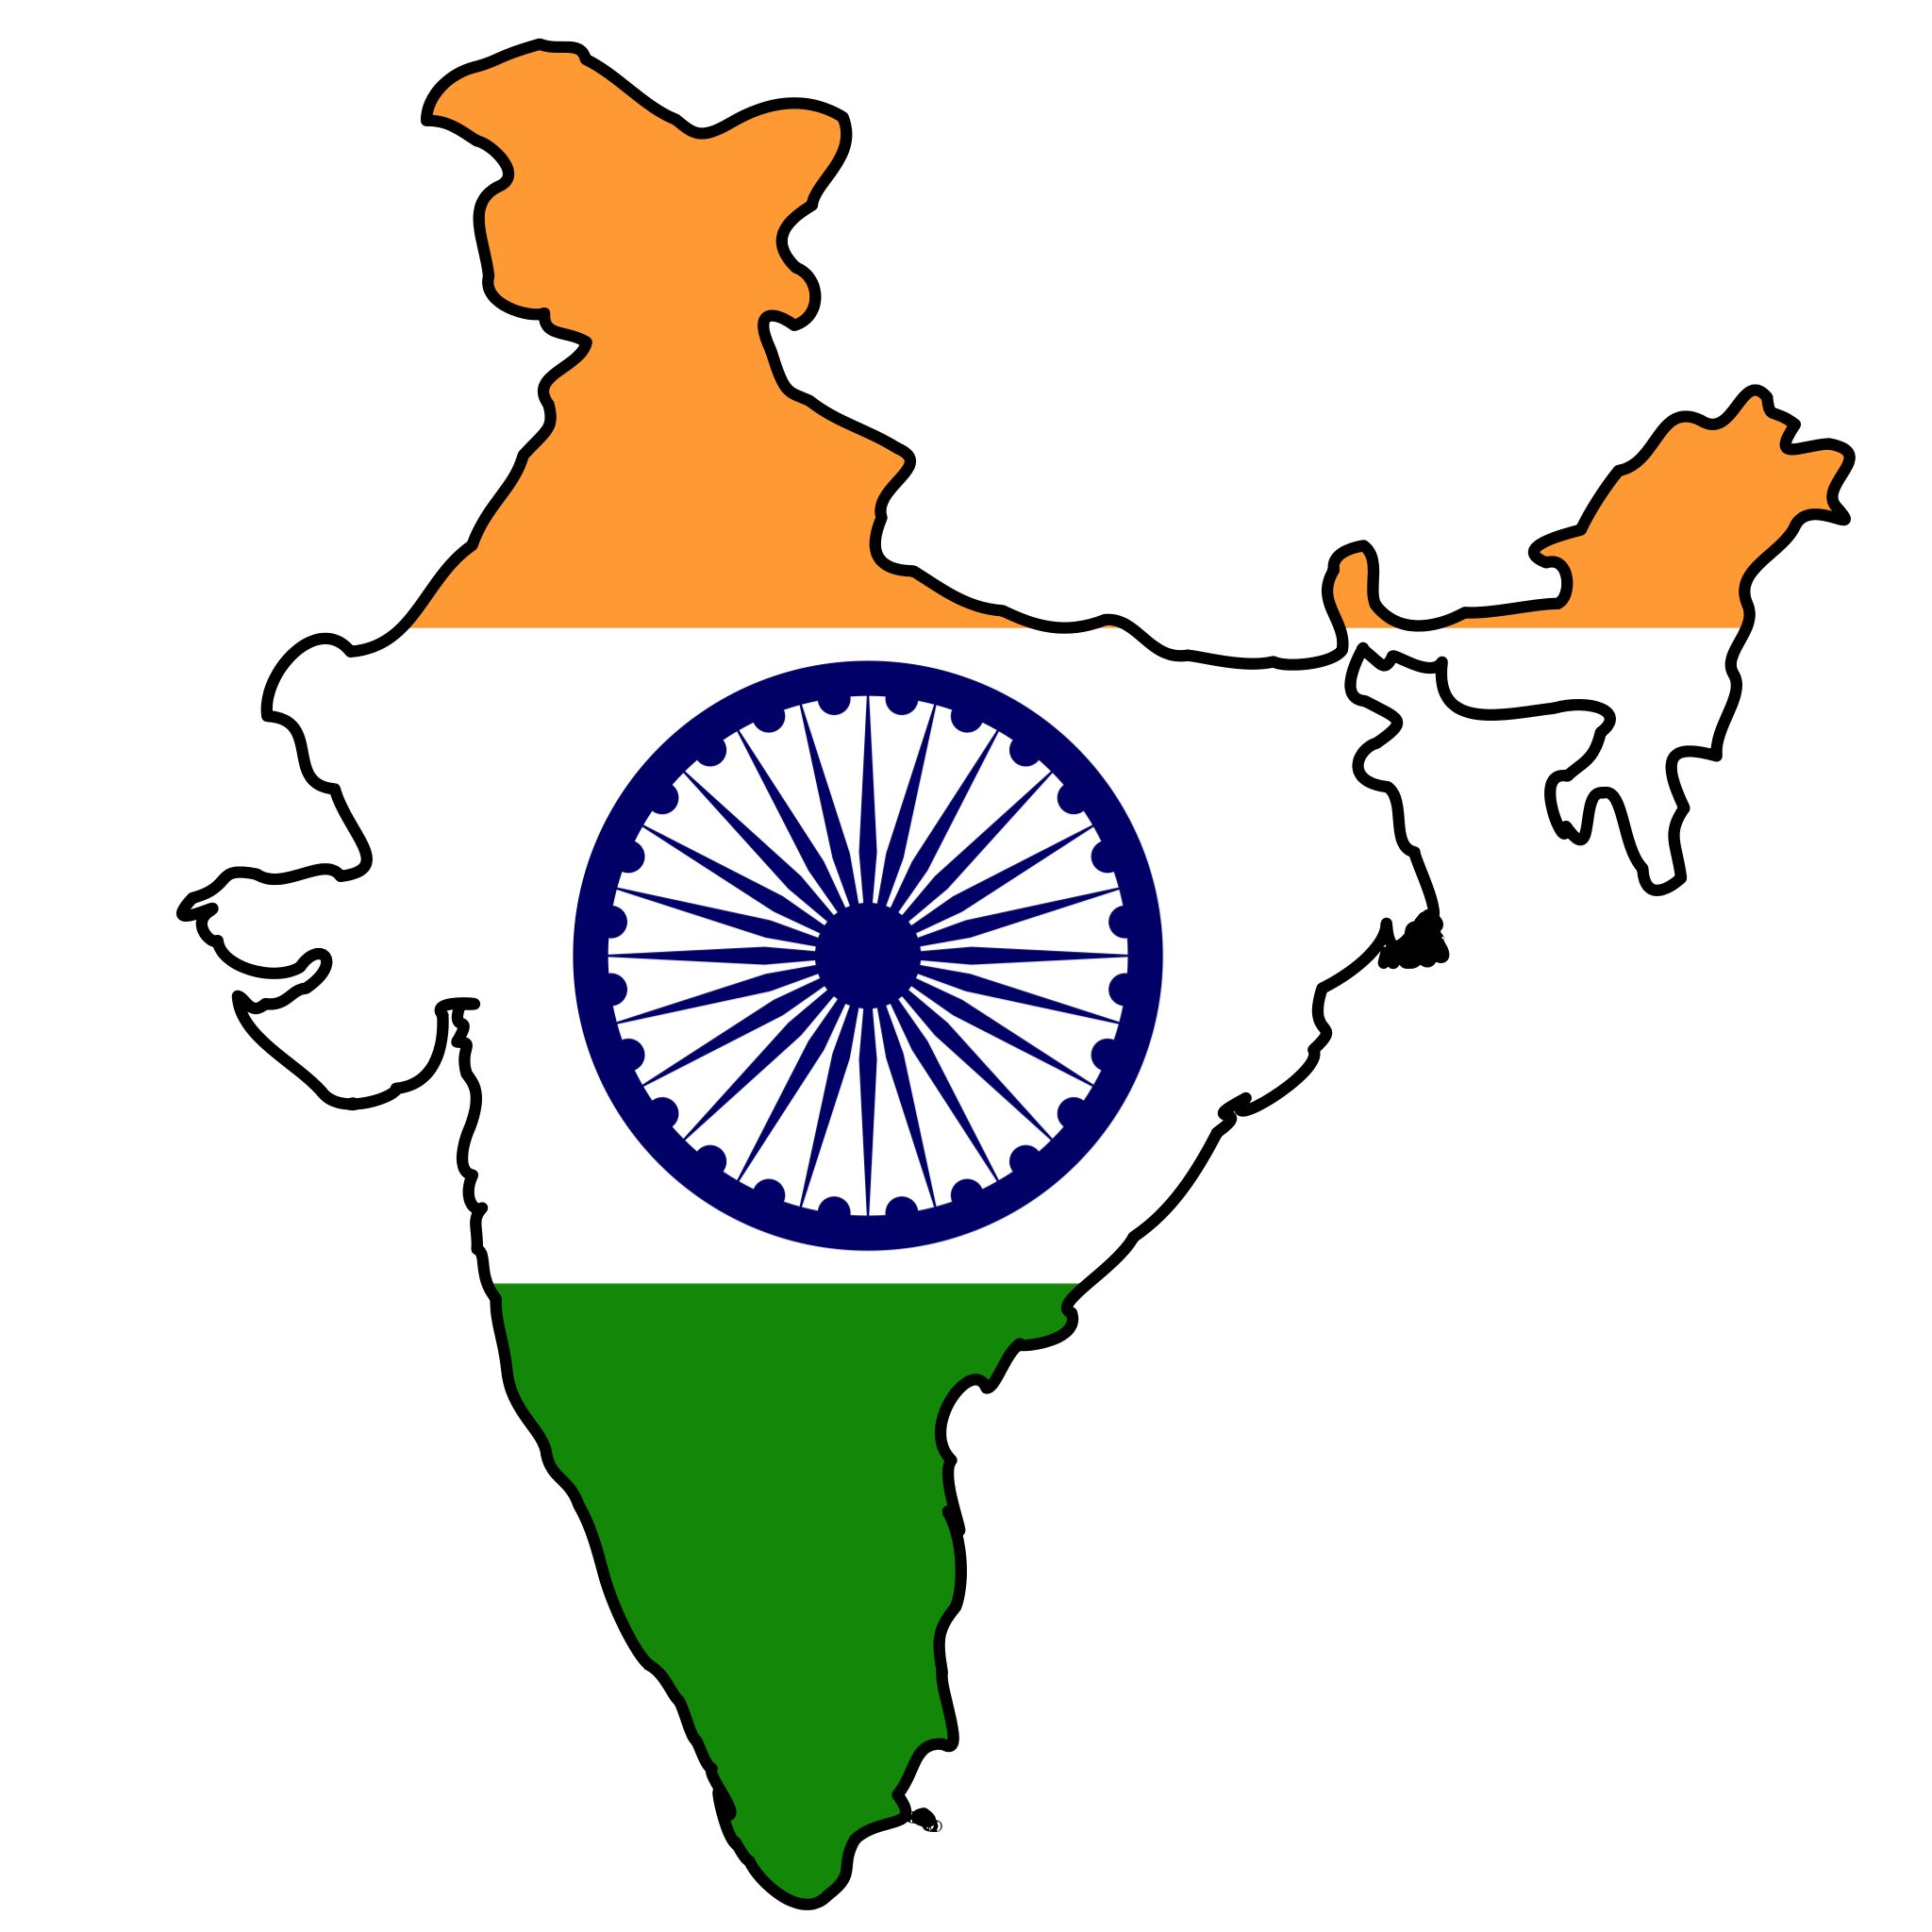 Ancient india clipart map image free library India Map Drawing | Free download best India Map Drawing on ... image free library